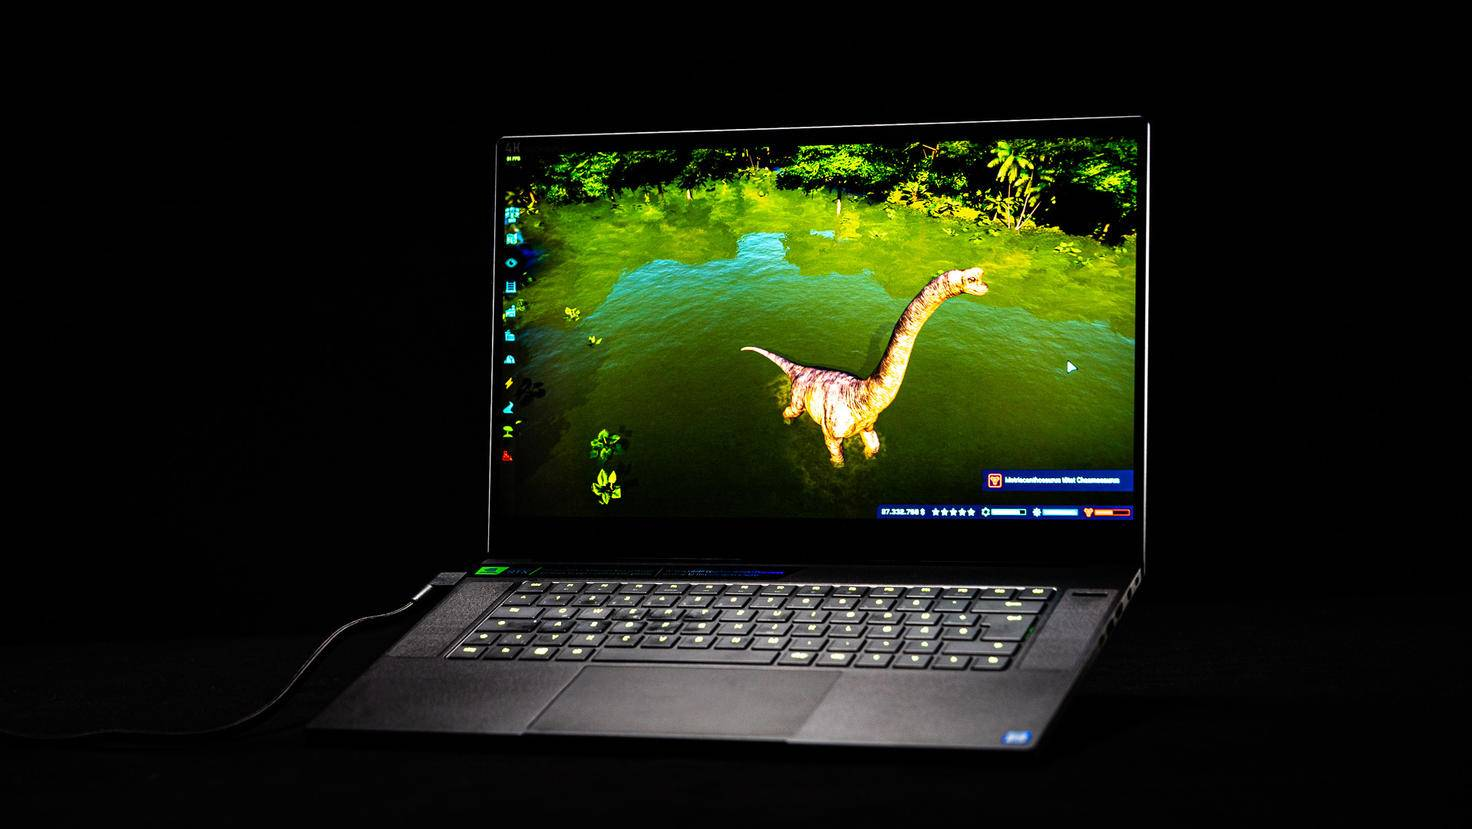 razer-blade-15-profi-advanced-2019-11